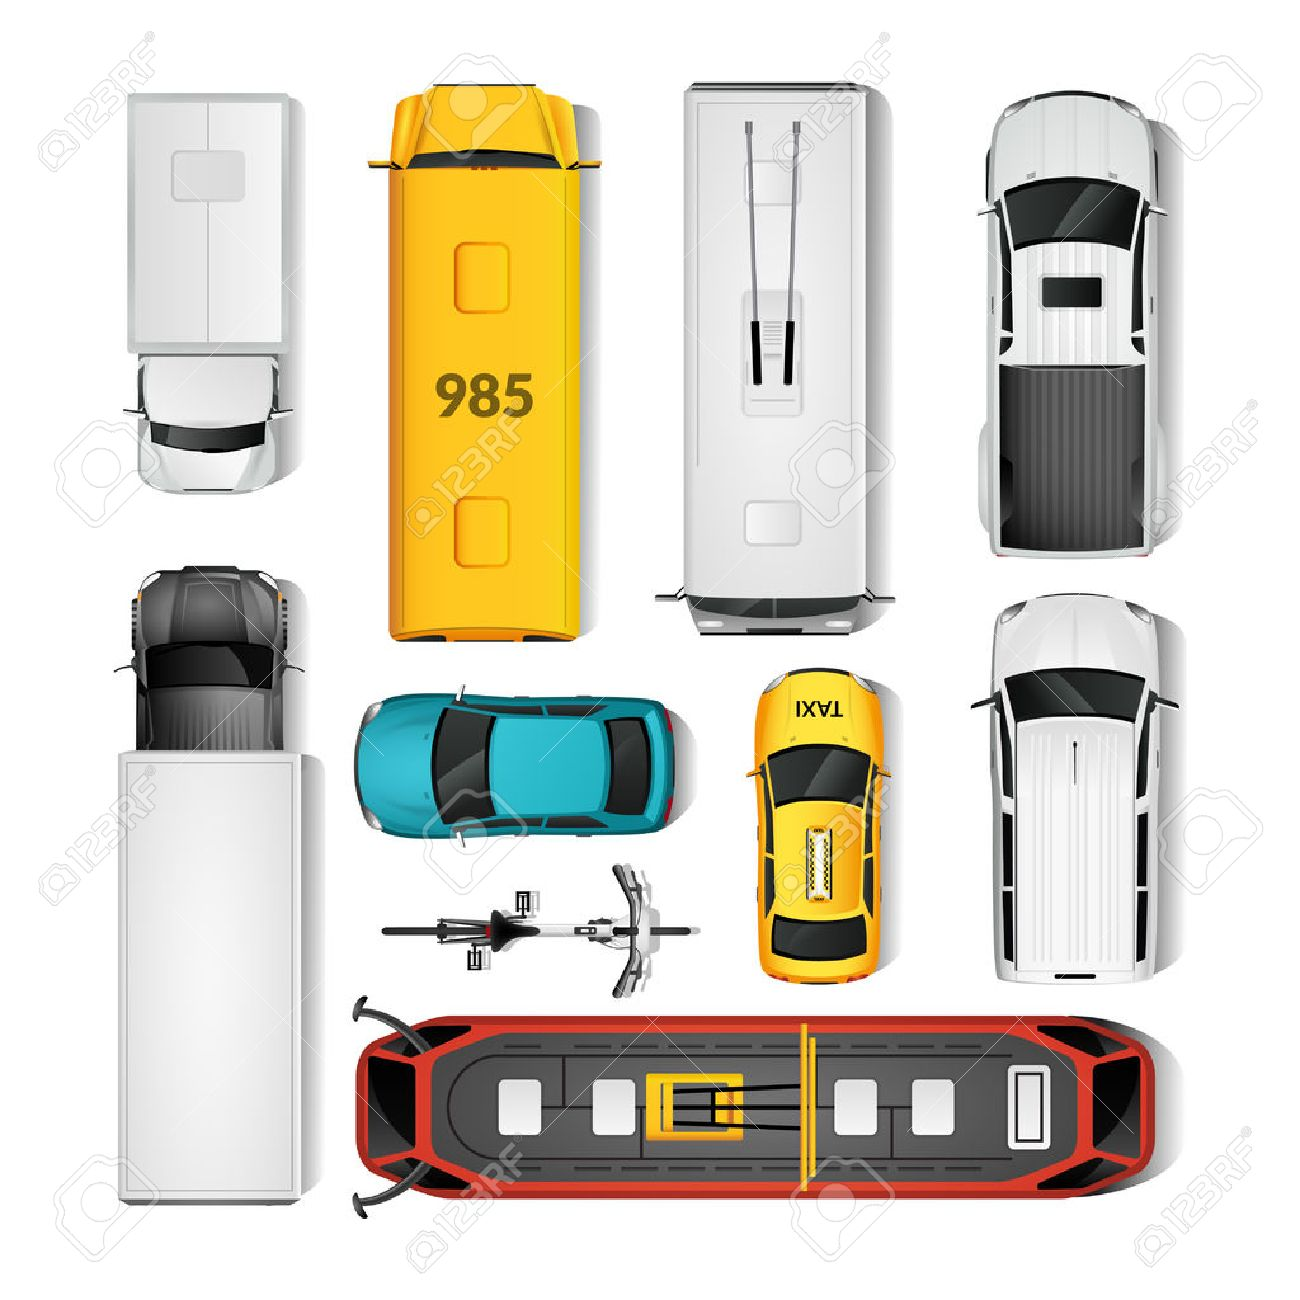 City Transport Top View Icons Set.City Transport Isolated Vector Illustration. City Vehicles Design Set. City Transport Cartoon Decorative Set. Stock Vector - 58476505